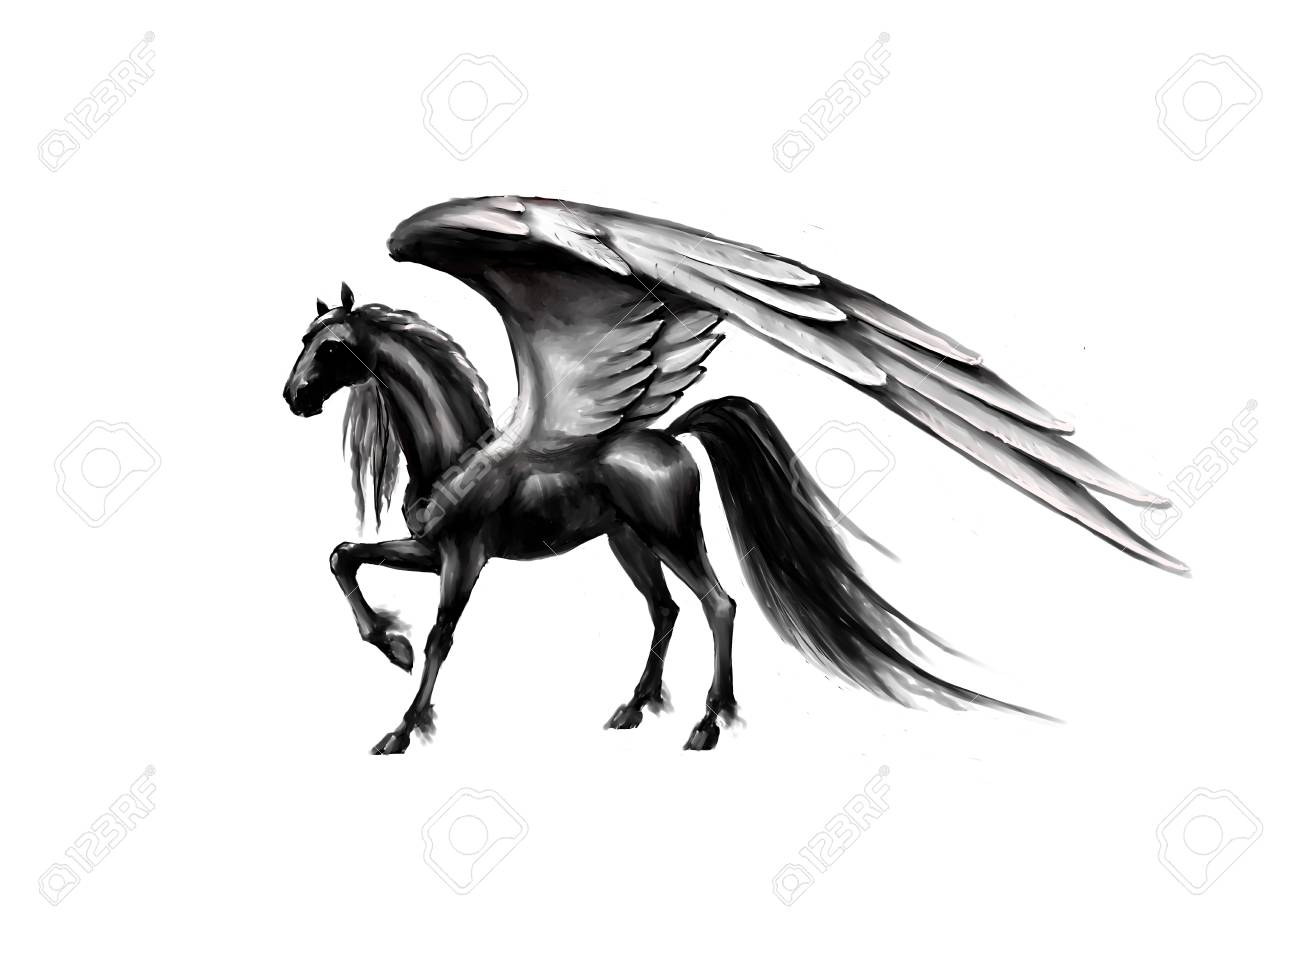 Pegasus Black Horse Wings Fantasy Pattern Stock Photo Picture And Royalty Free Image Image 73013946